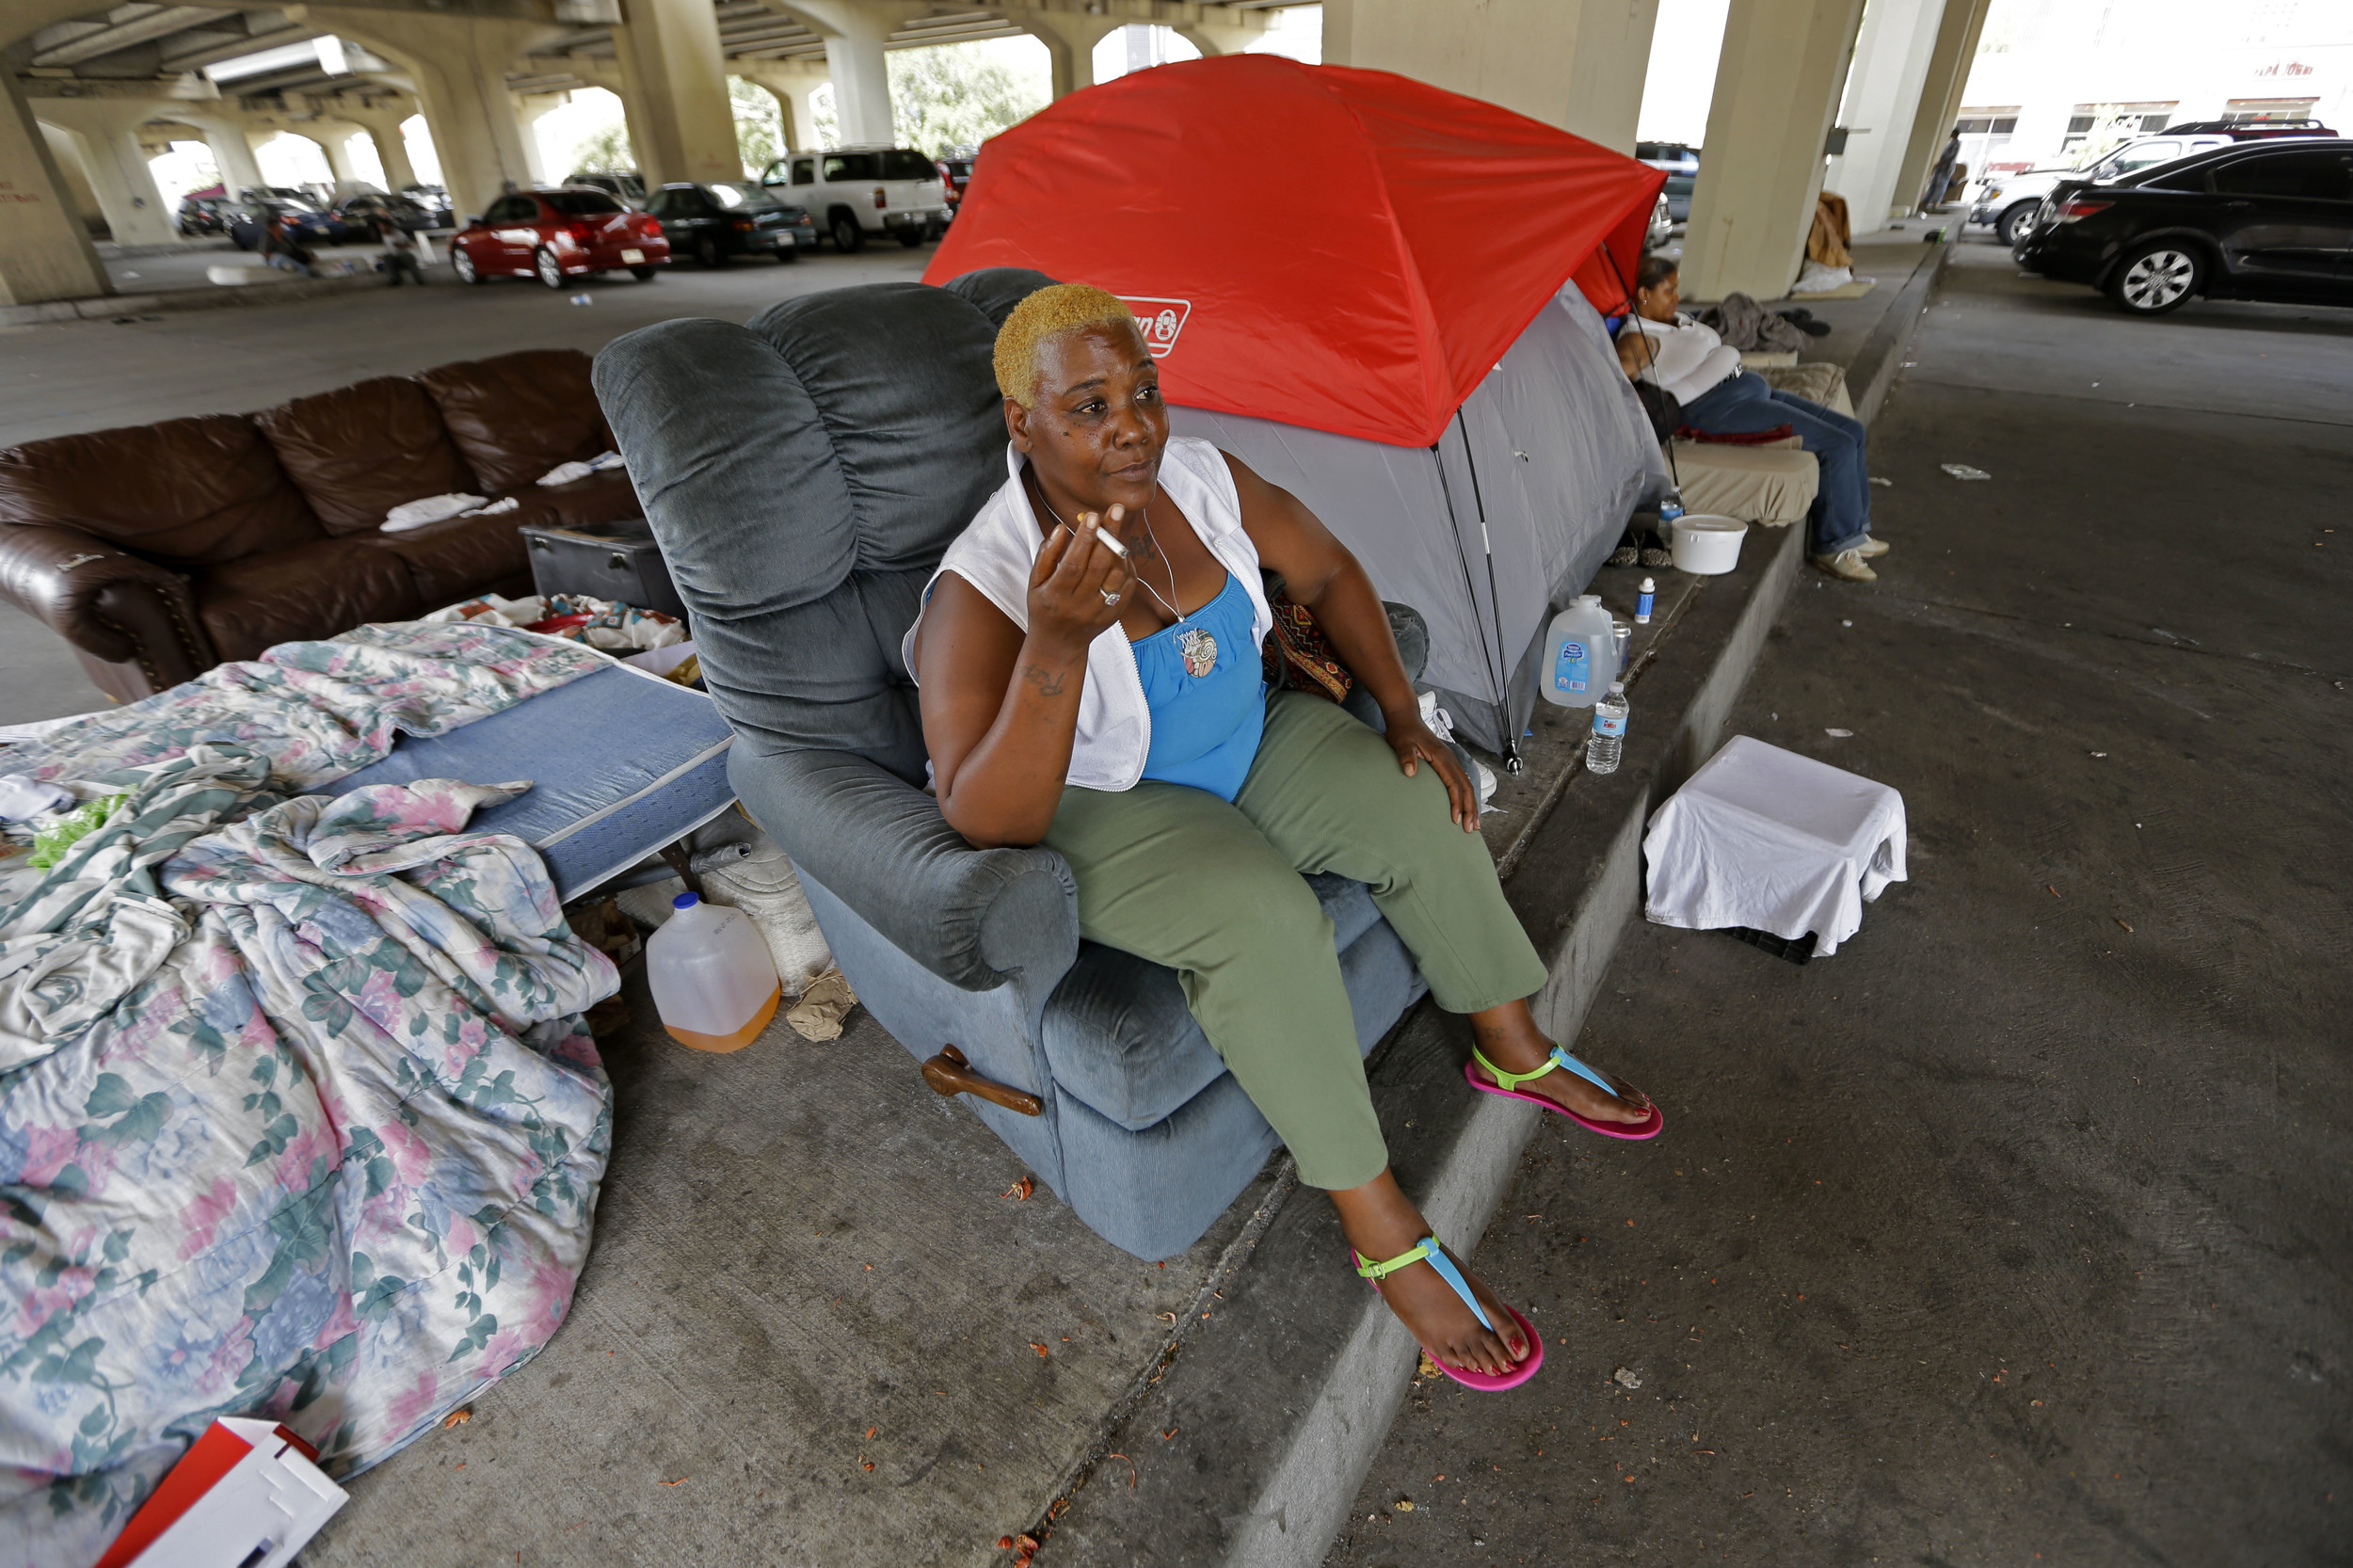 Report: Far fewer homeless in New Orleans than after Katrina